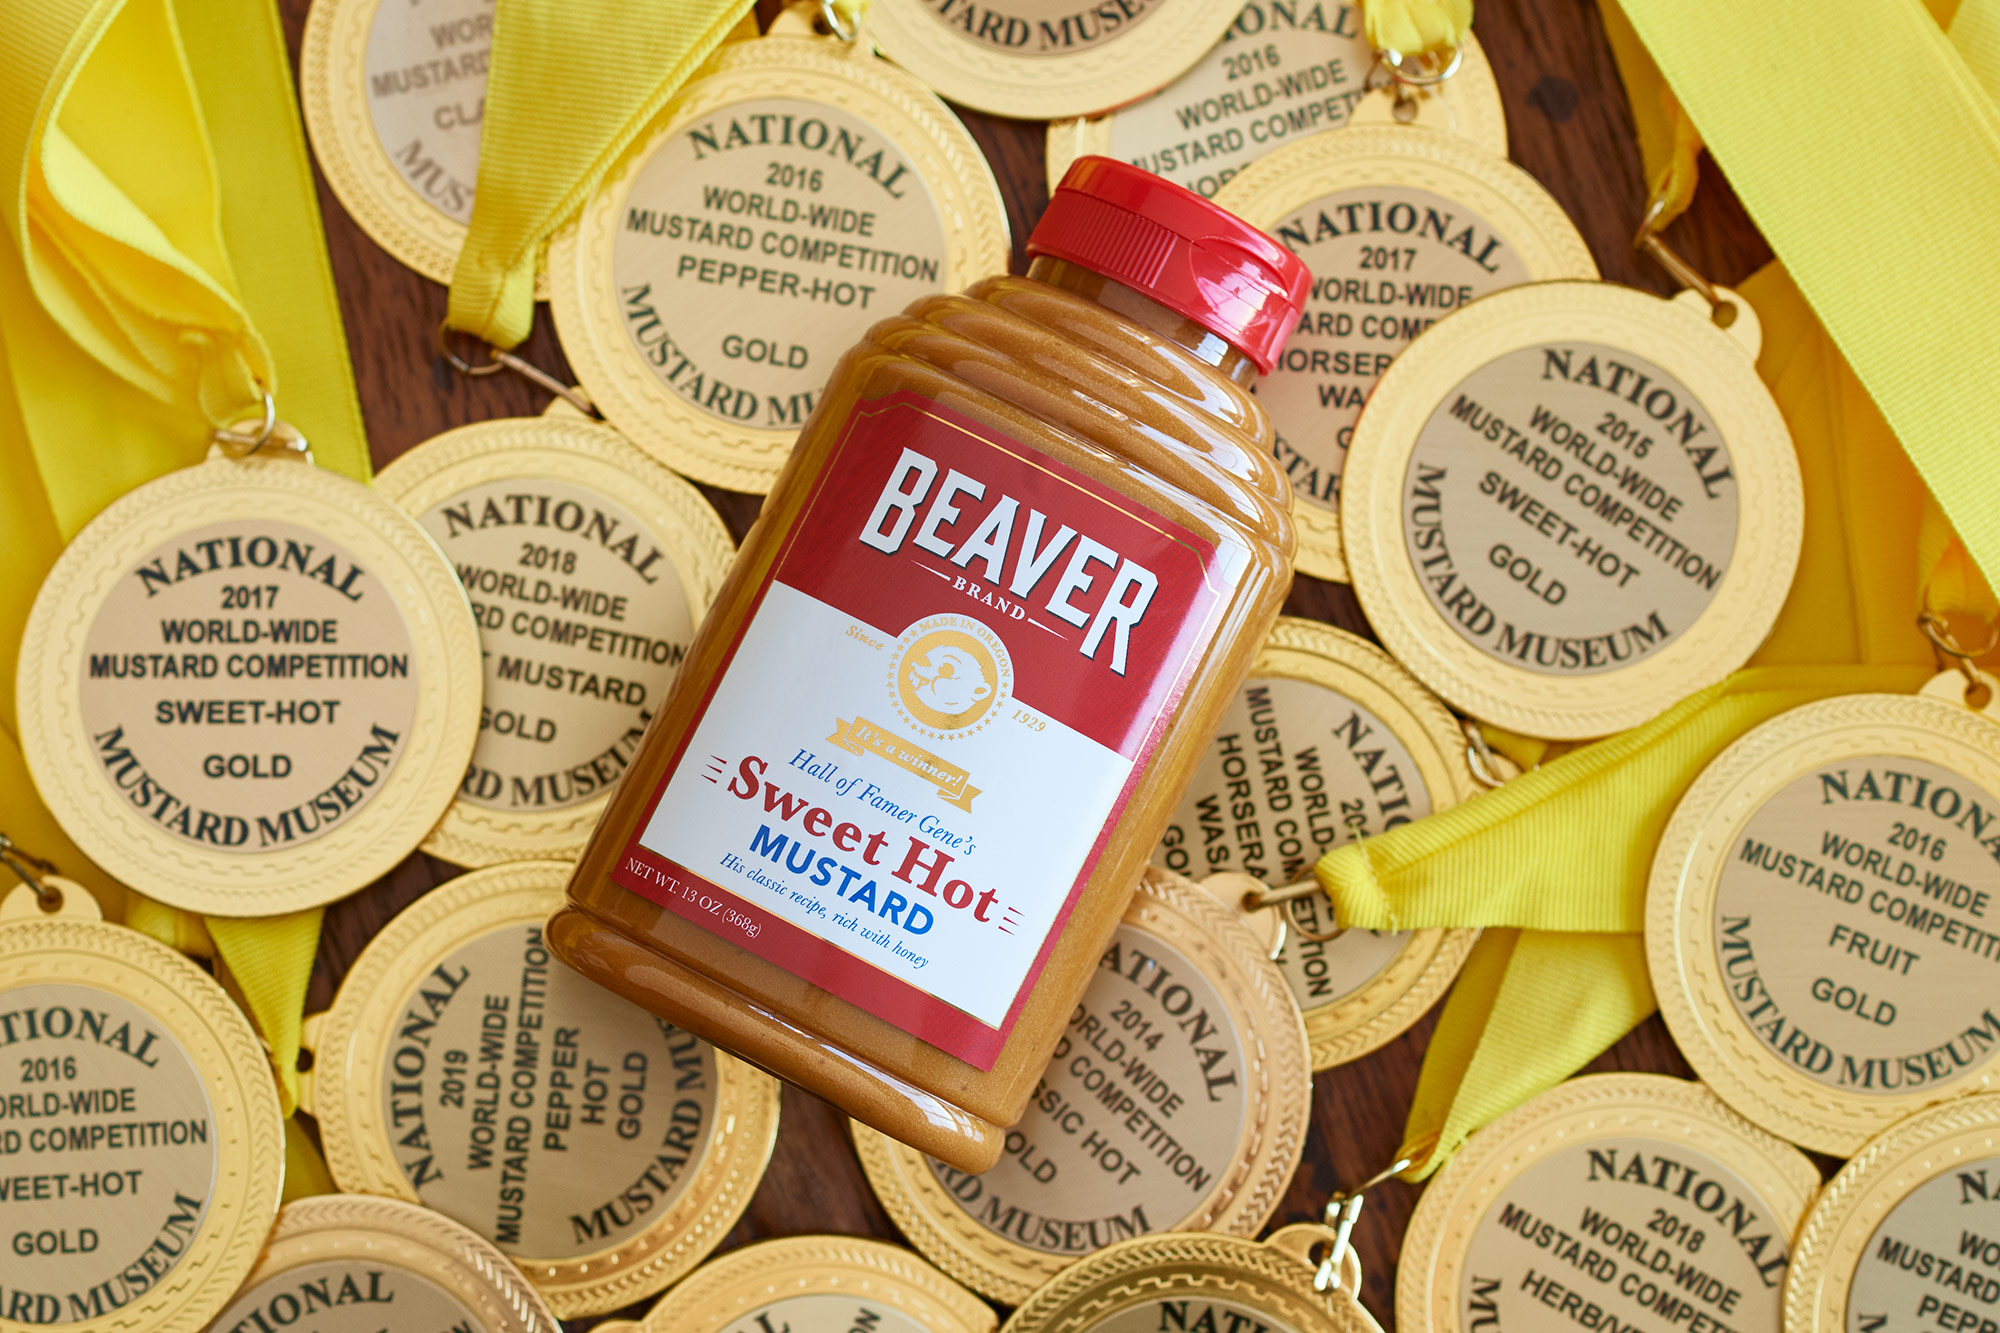 Beaver Brand Sweet Hot Mustard bottle laying on a table full of World-Wide Mustard Competition gold medals